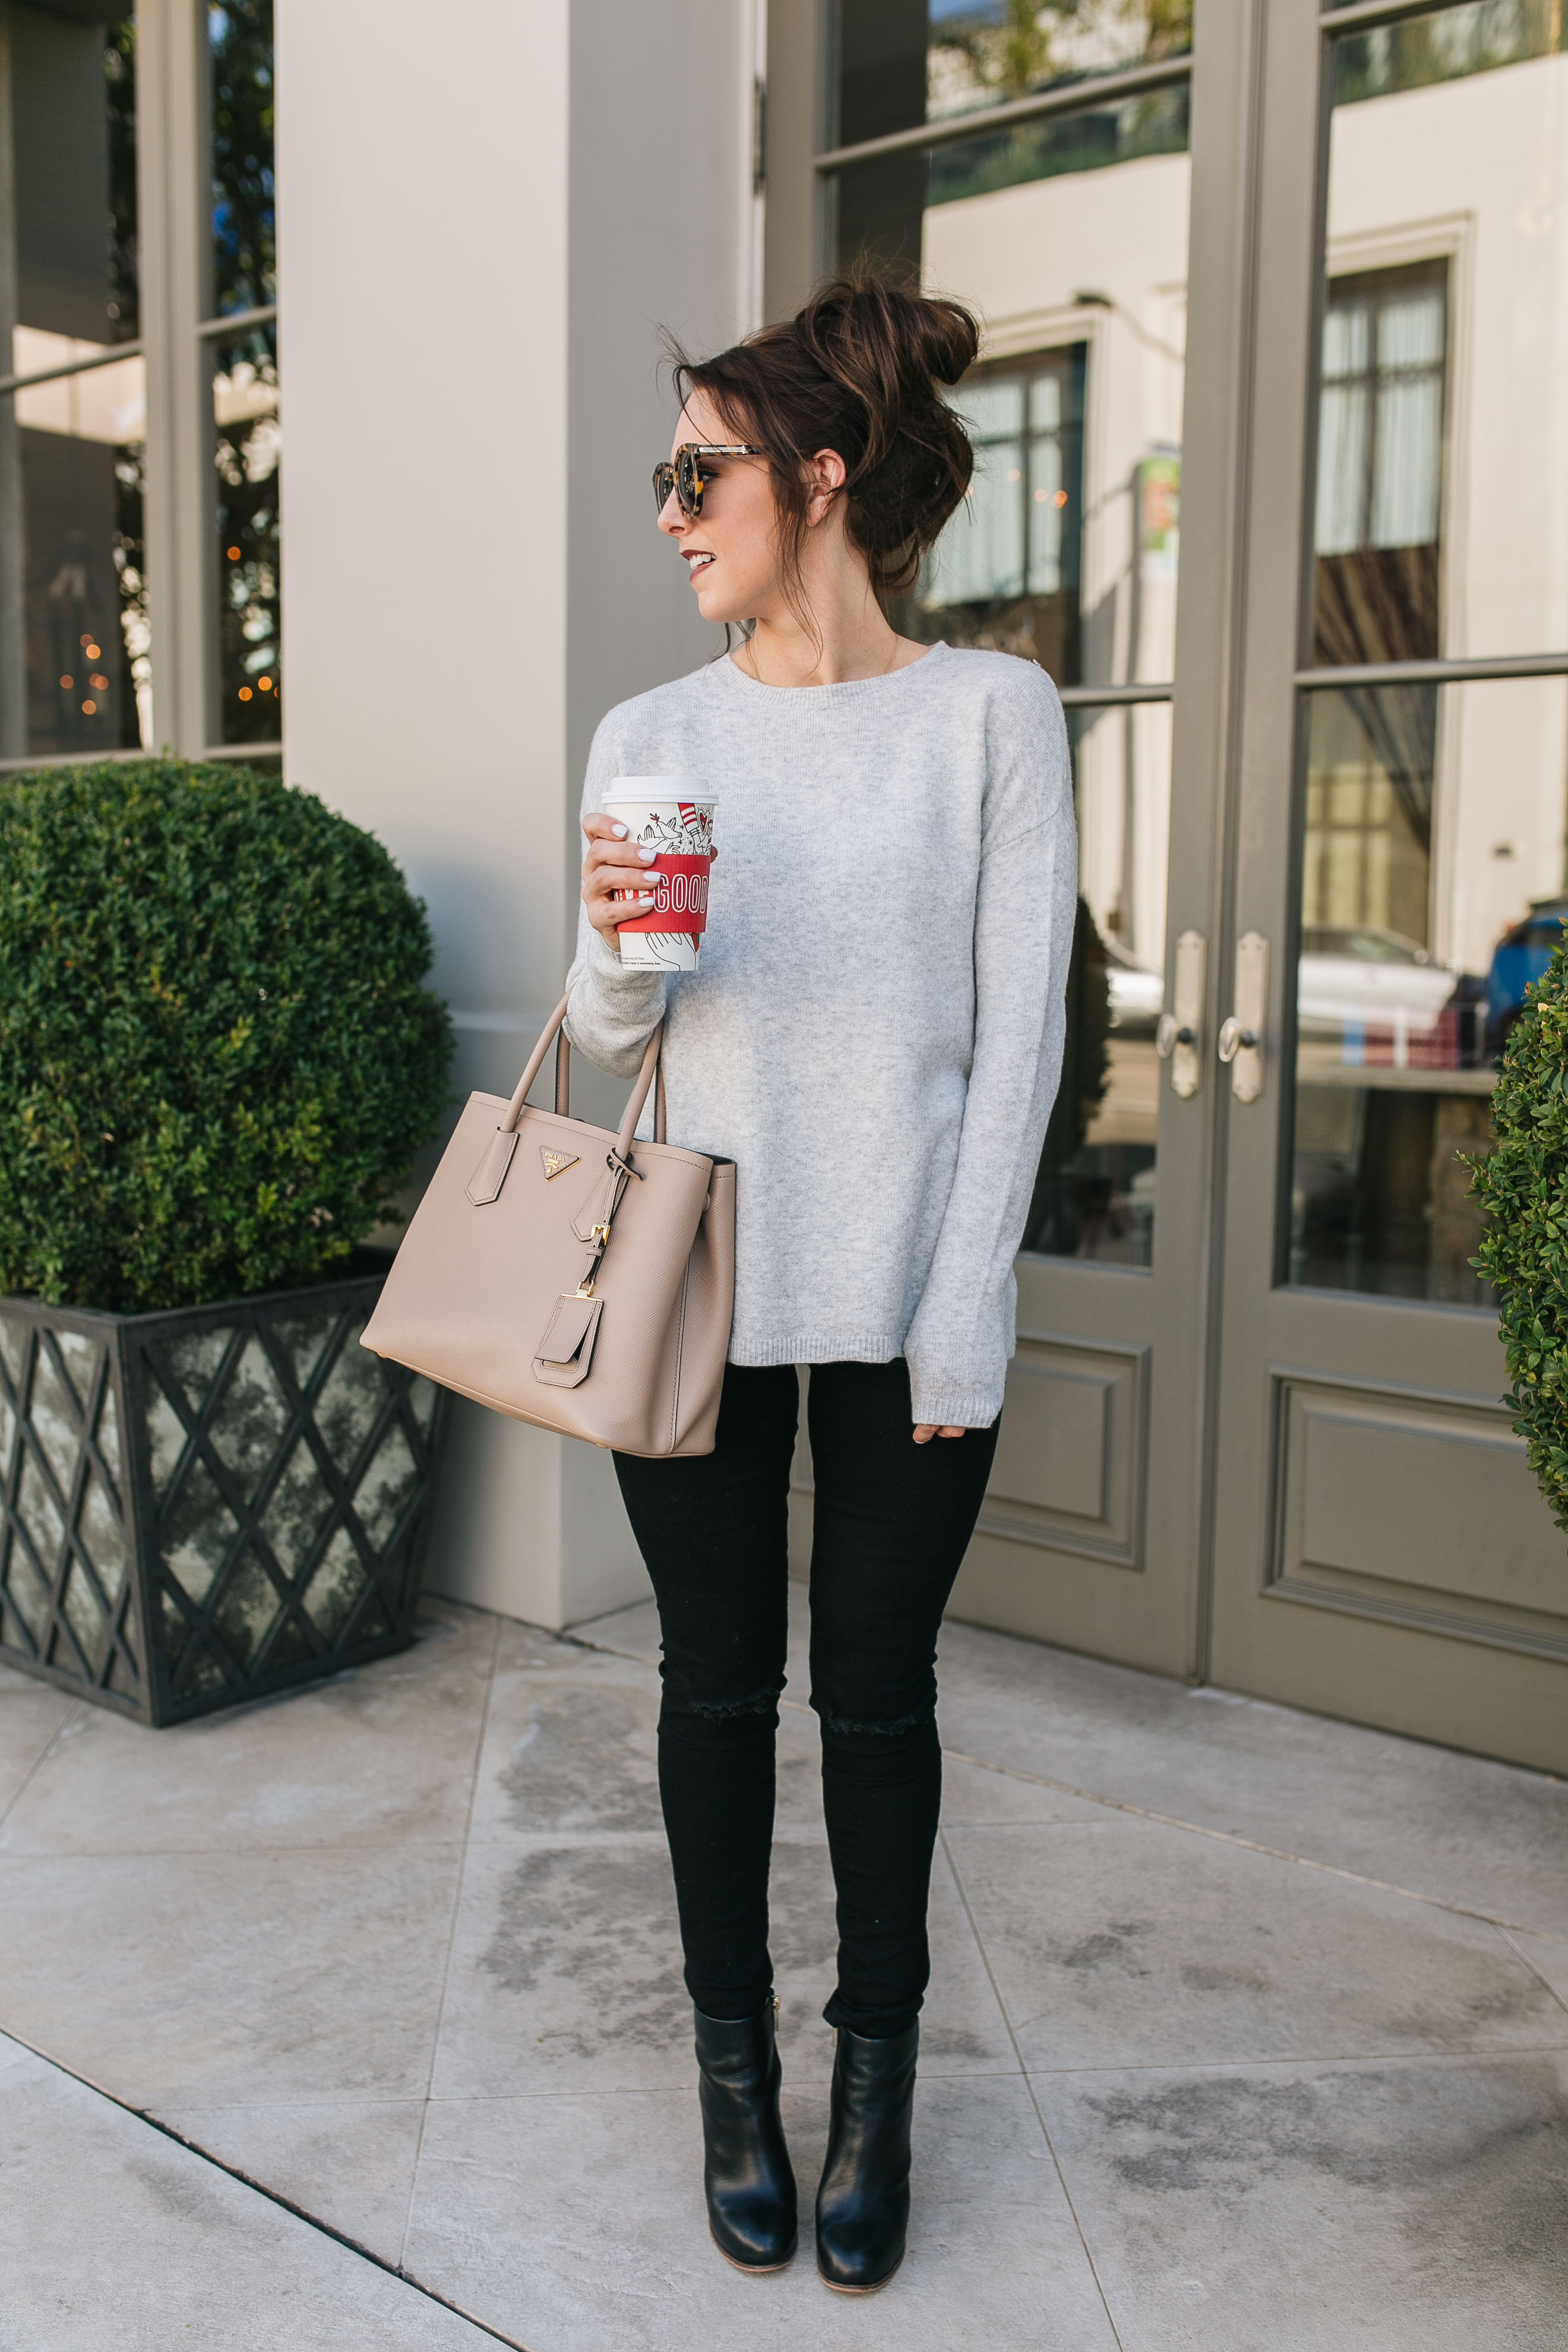 Style blogger Daryl-Ann Denner wears a bow back sweater from Nordstrom, black ripped skinny jeans from Abercrombie & Fitch, a nude Prada bag, black leather booties, leopard print sunglasses and a hot chocolate in a Starbucks holiday cup.